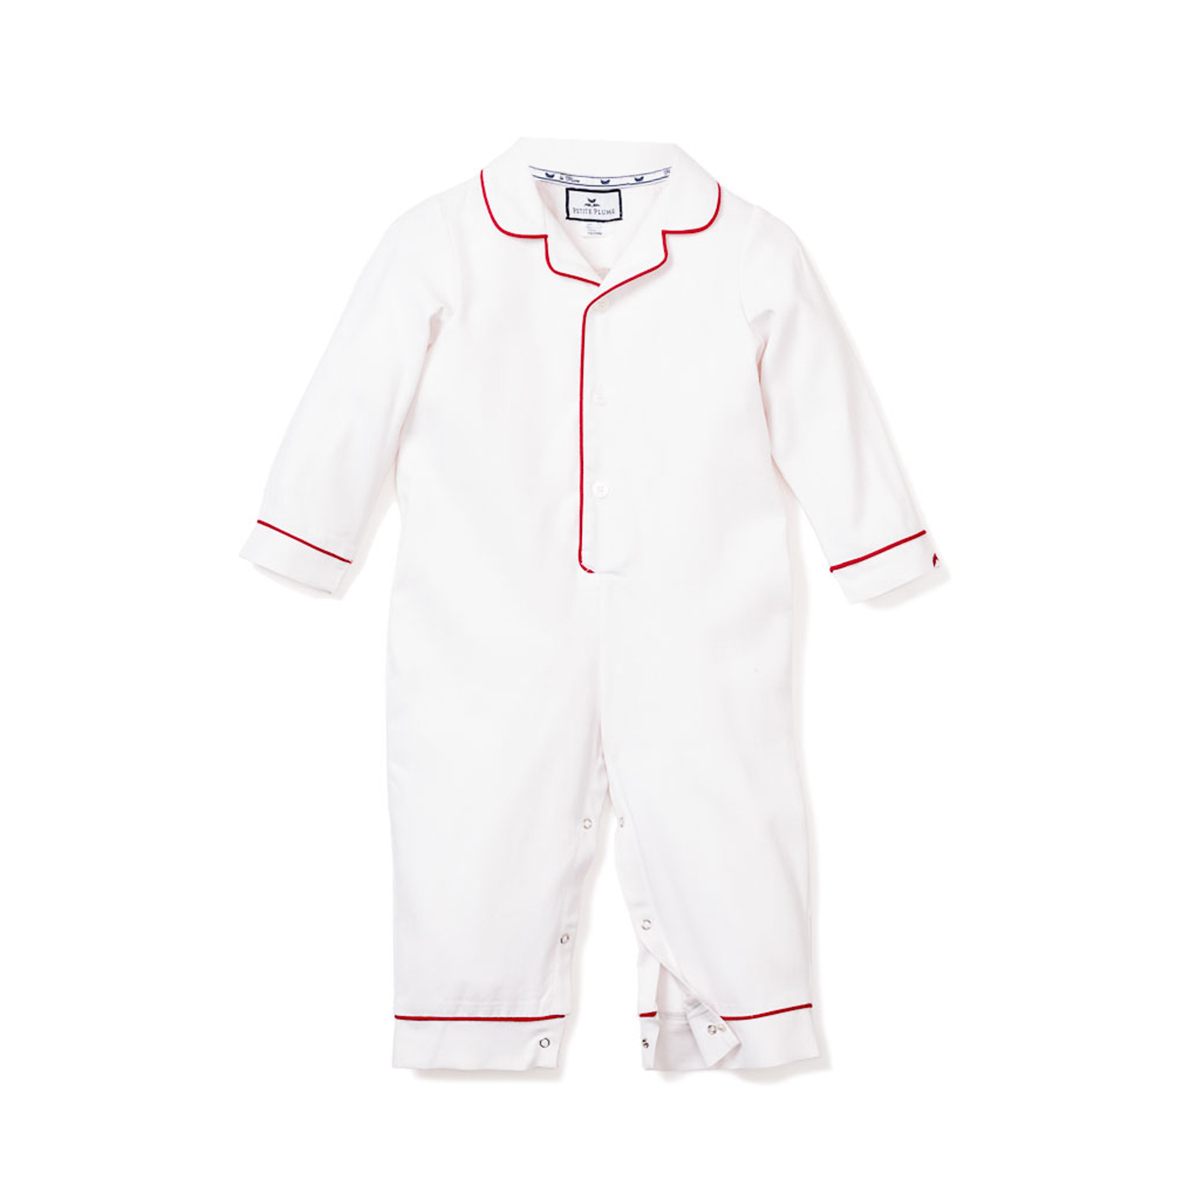 Petite Plume White Festive Romper with Red Piping